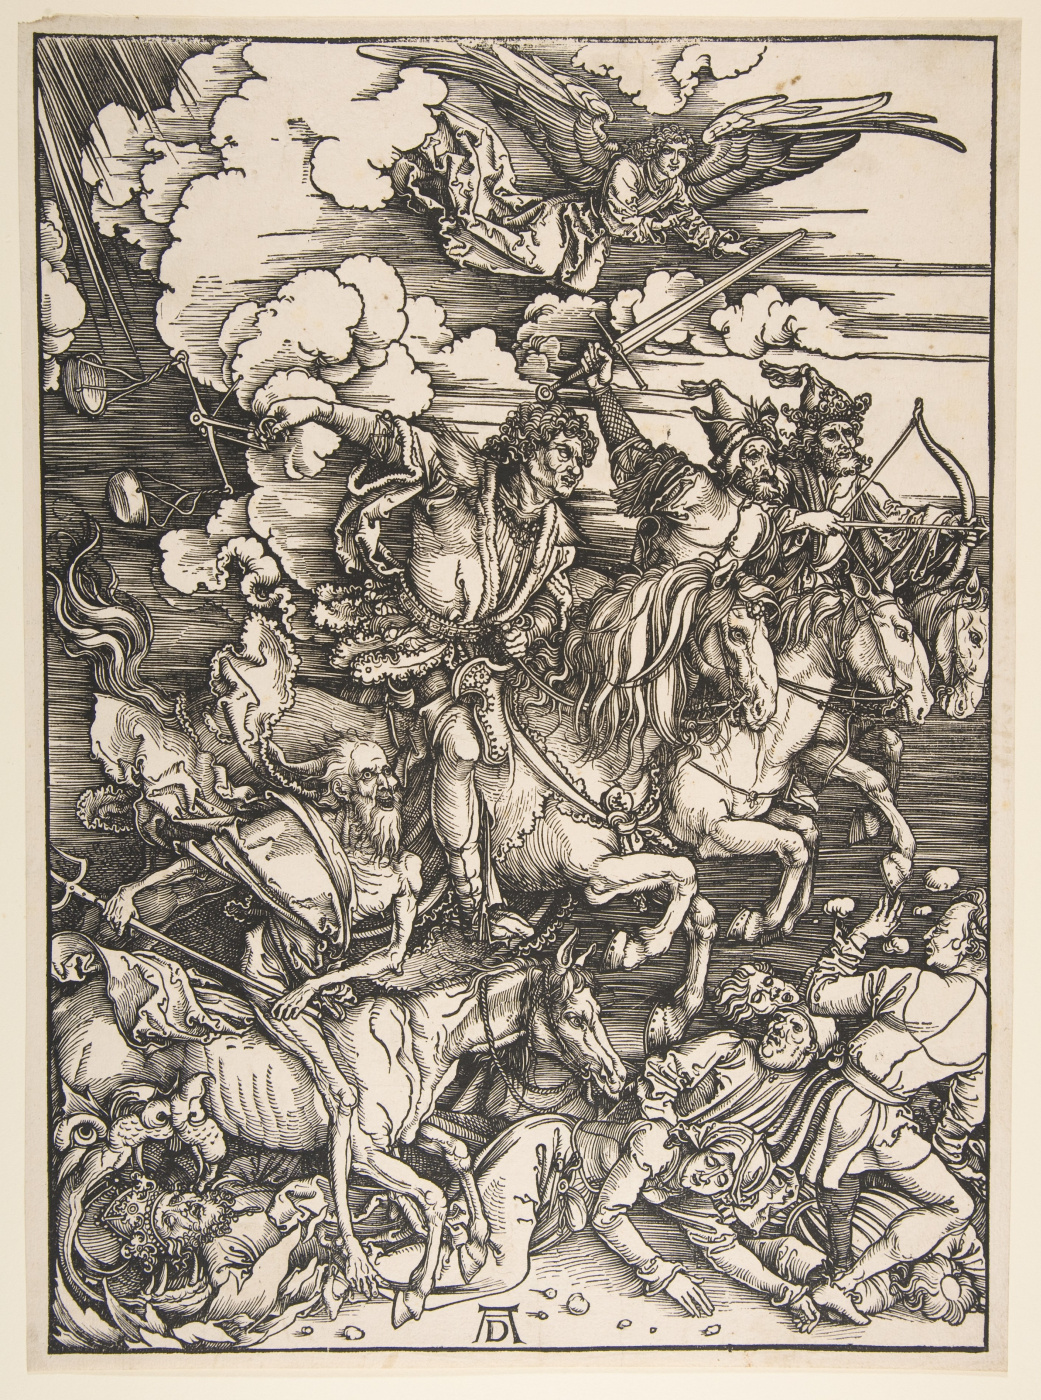 Albrecht Dürer. The four horsemen of the Apocalypse.From the series the Apocalypse.